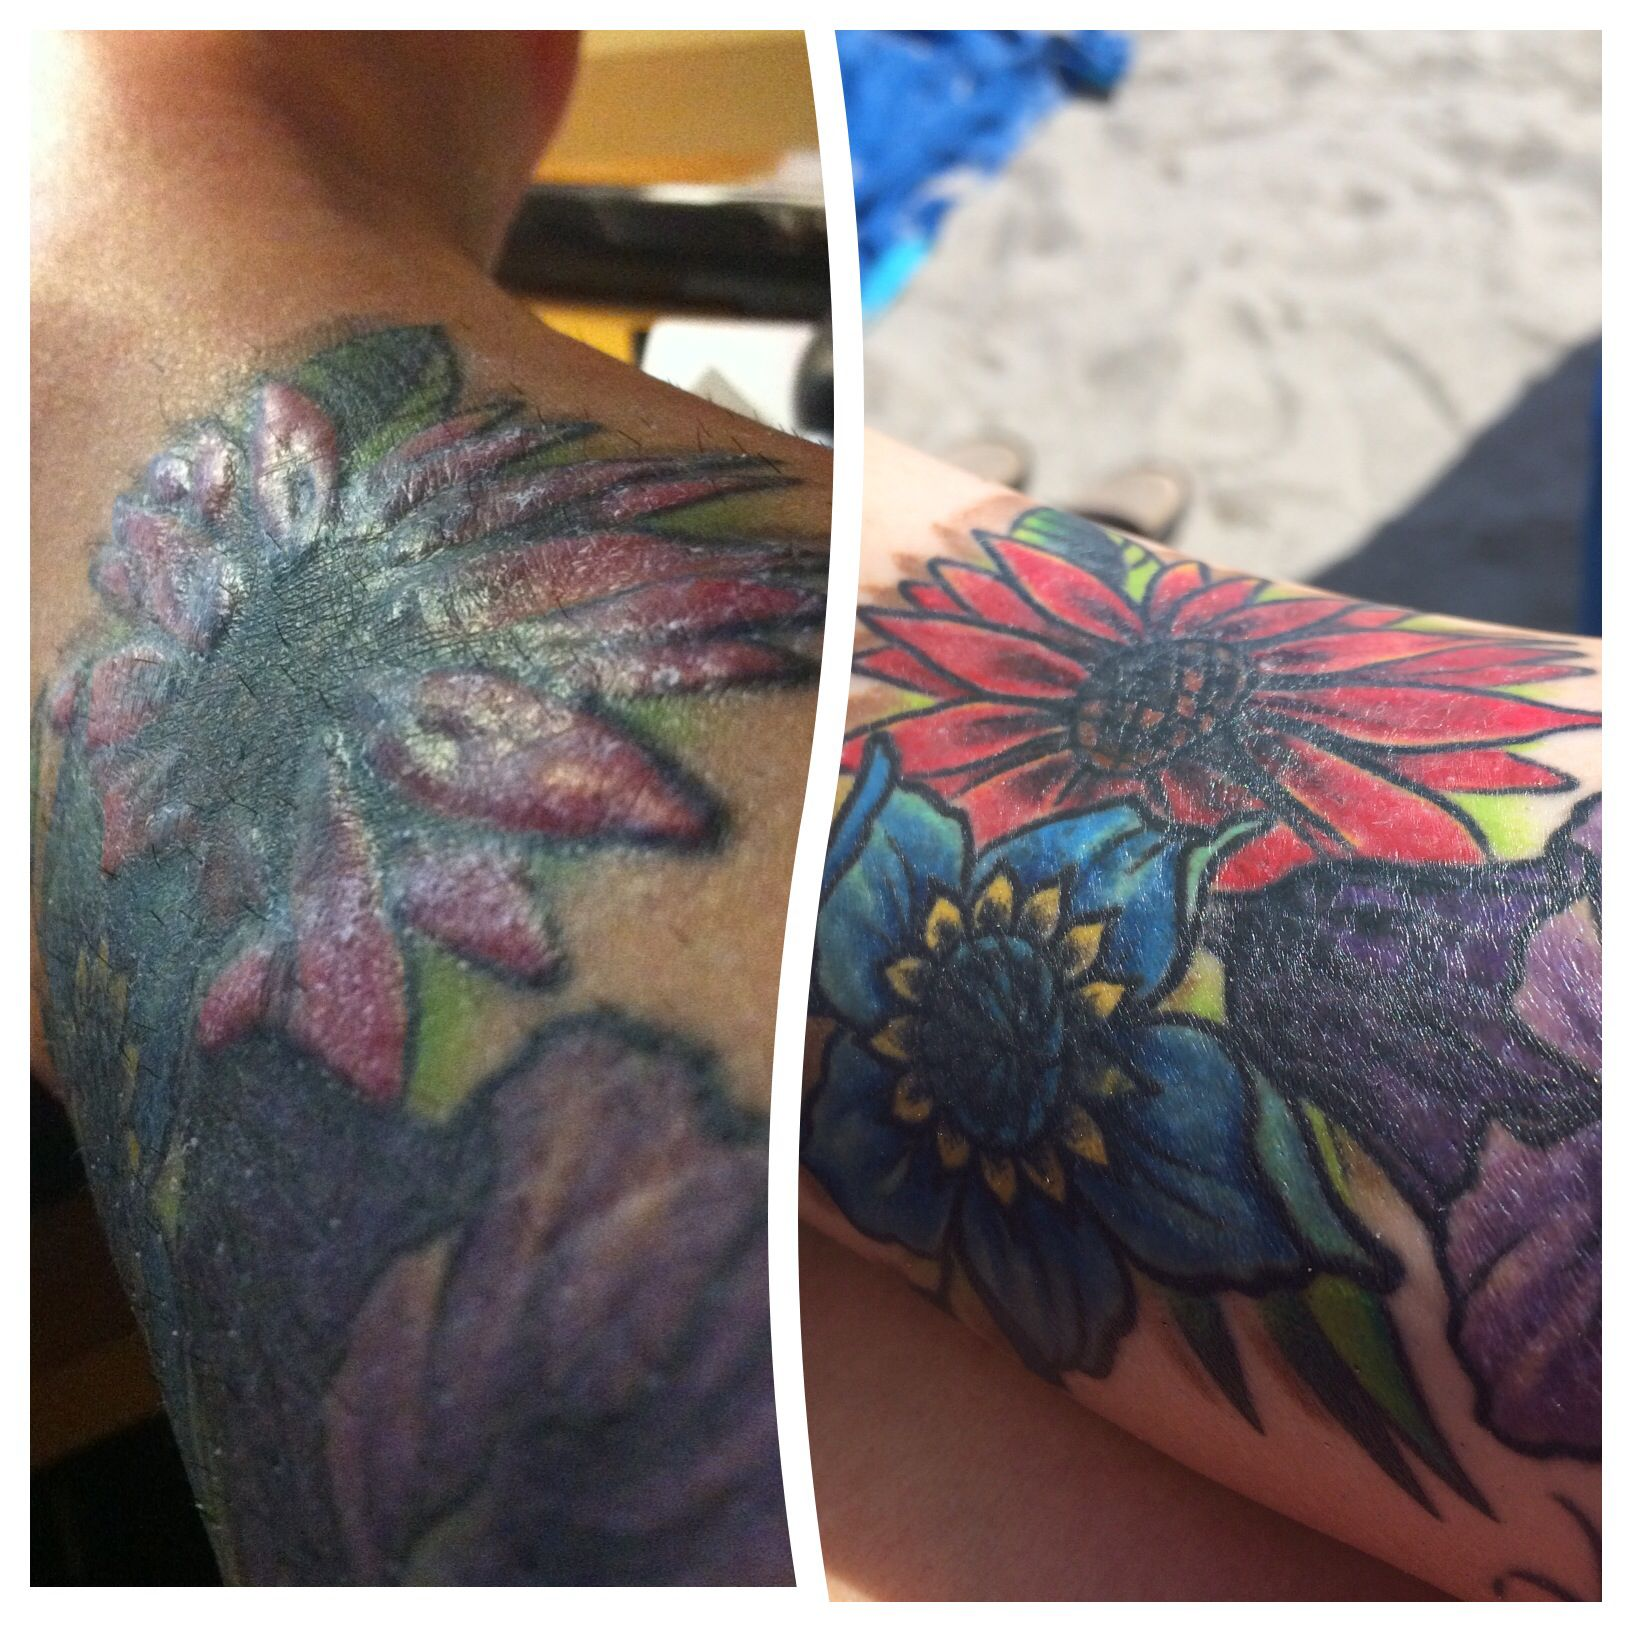 Tattooallergy Before And After Three Months Of Steroid Shots Into Tattoo For Red Ink Allergy Tattoo Allergy Red Ink Tattoos